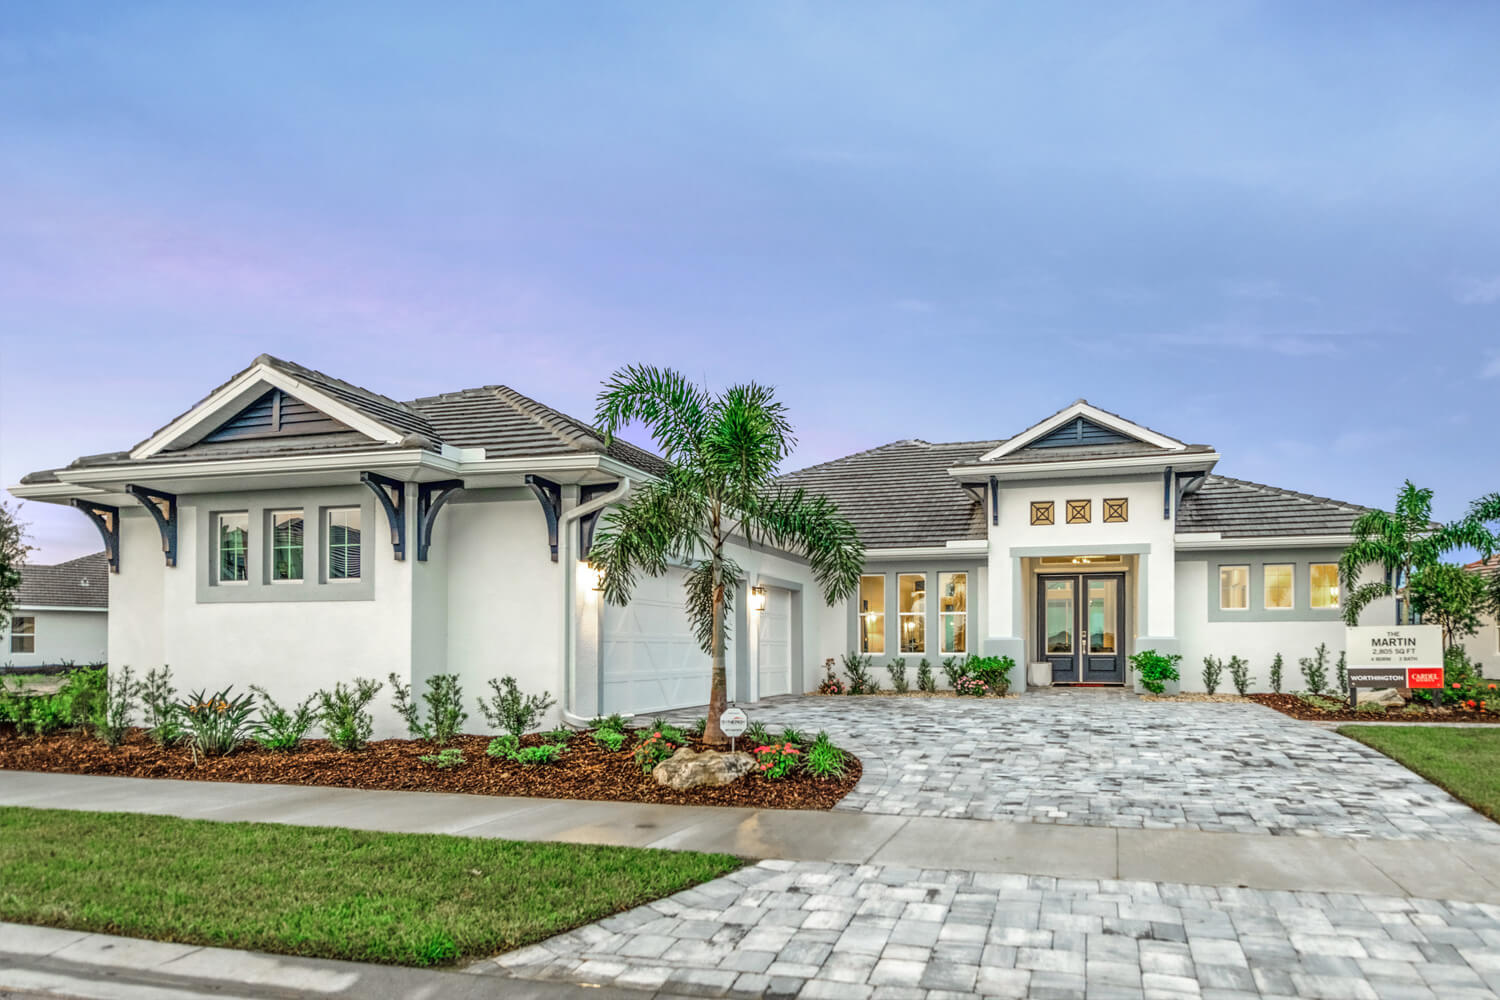 New Calgary Single Family Home Martin in Shawnee Park, located at 4612 Antrim Drive, Sarasota, FL Built By Cardel Homes Calgary